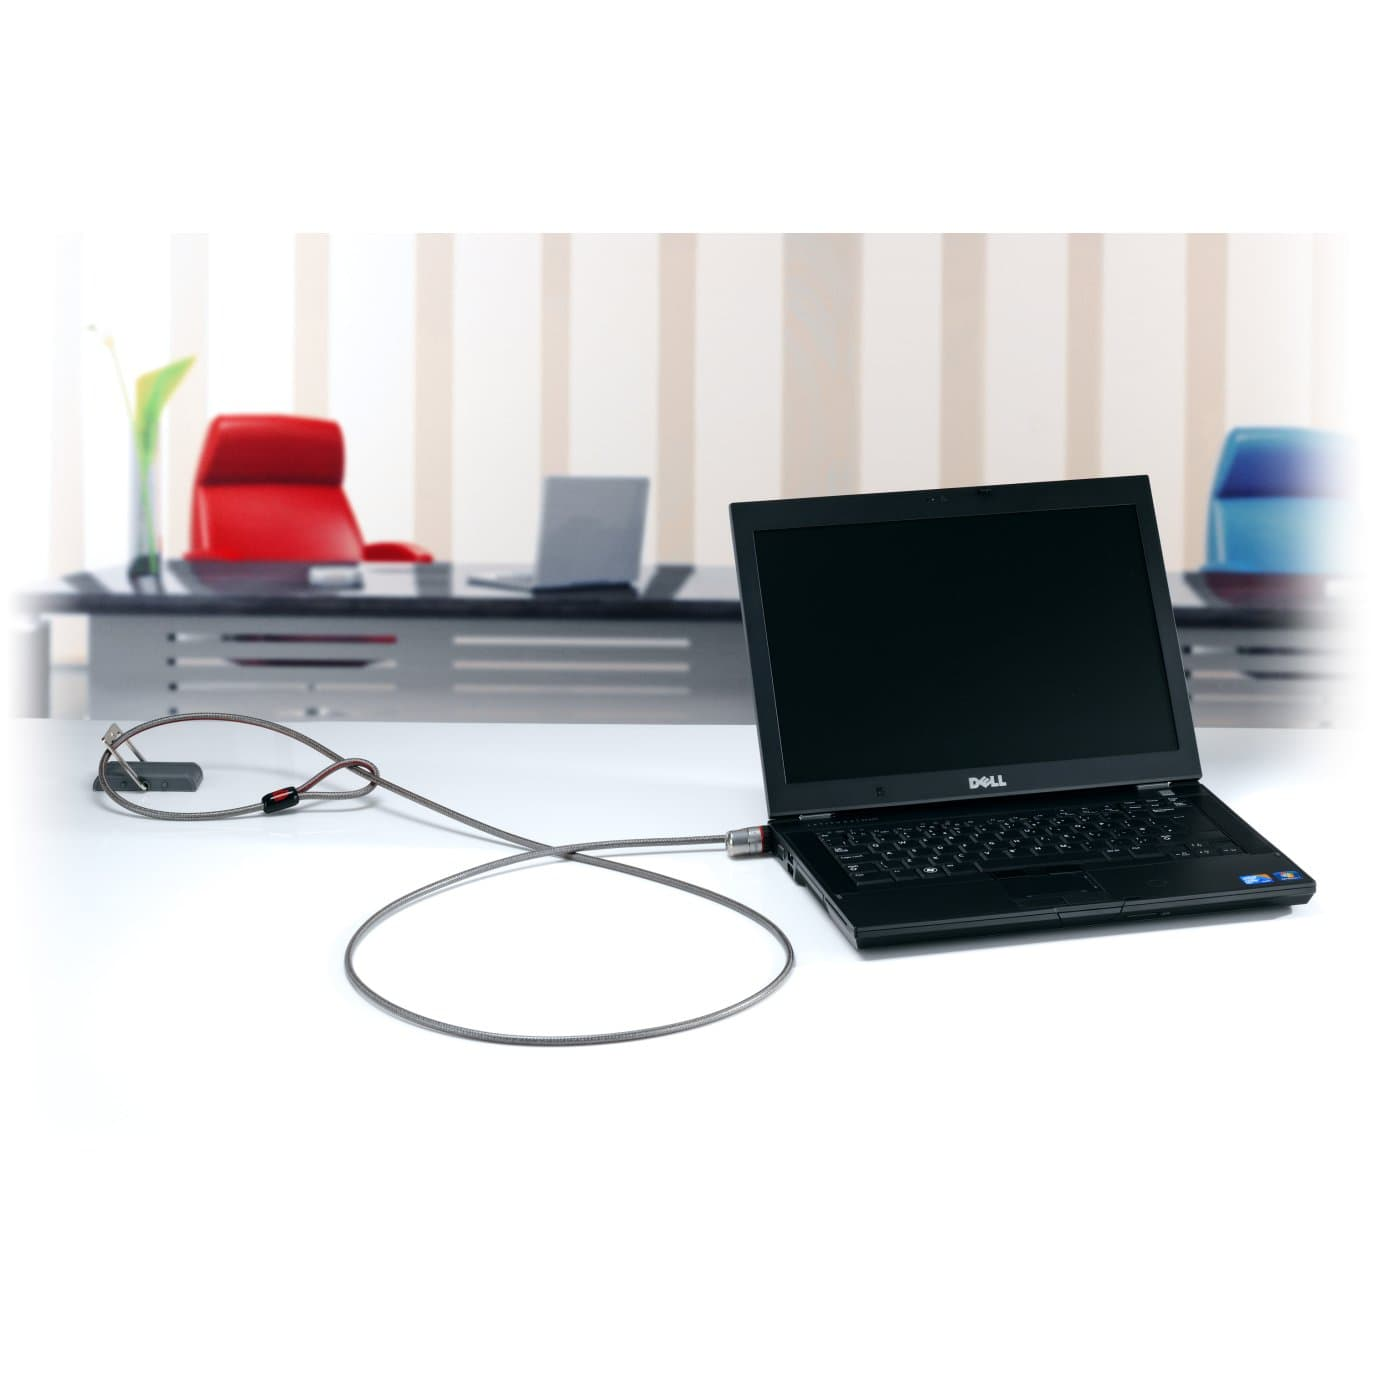 Lock Anchor Points & Accessories - Desk Mount Security Anchor Point